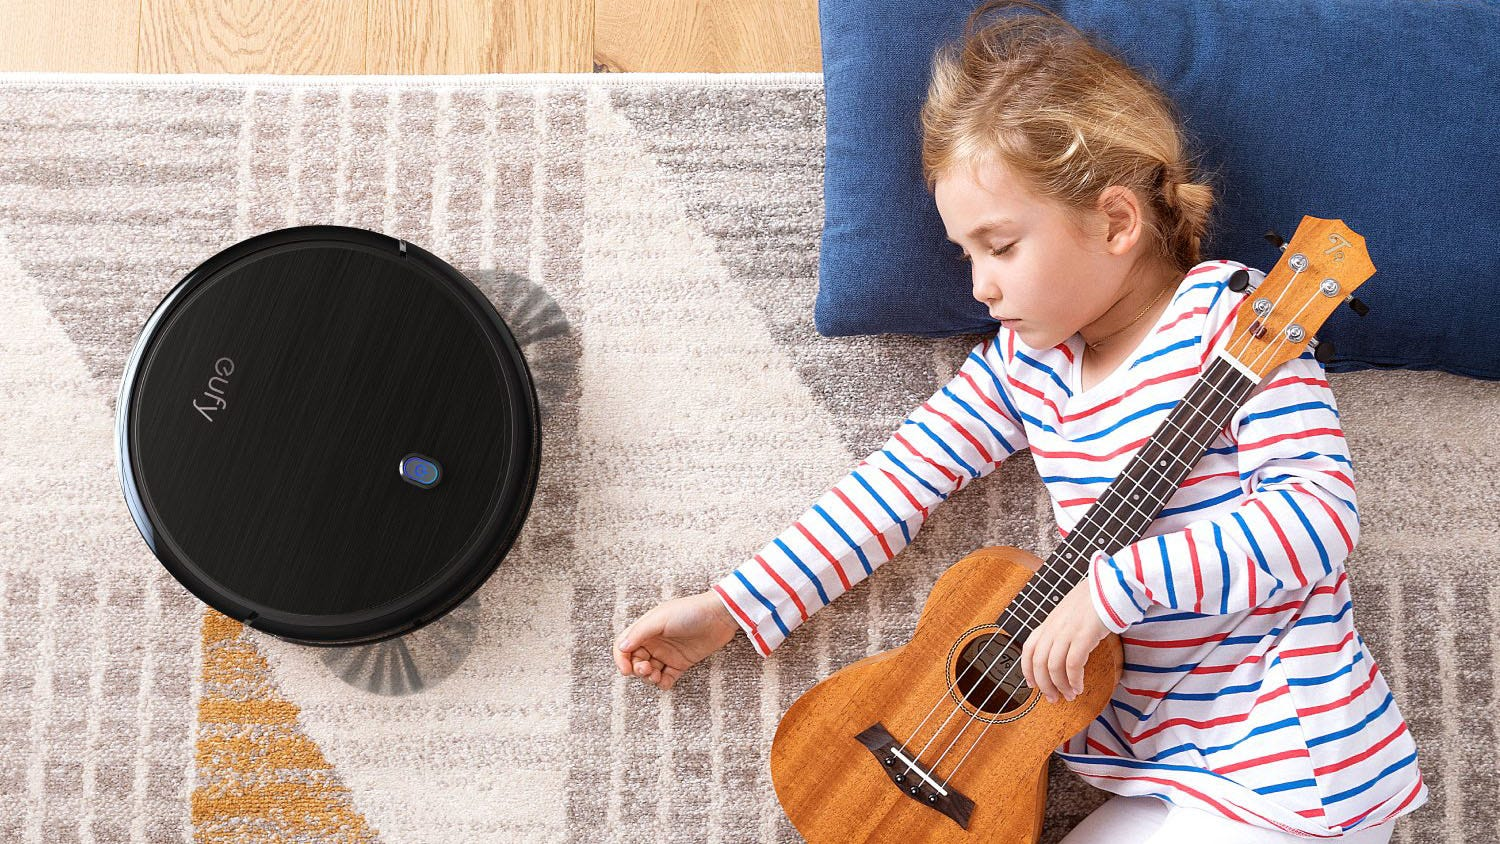 You can get our best-valued robot vacuum for a serious steal right now